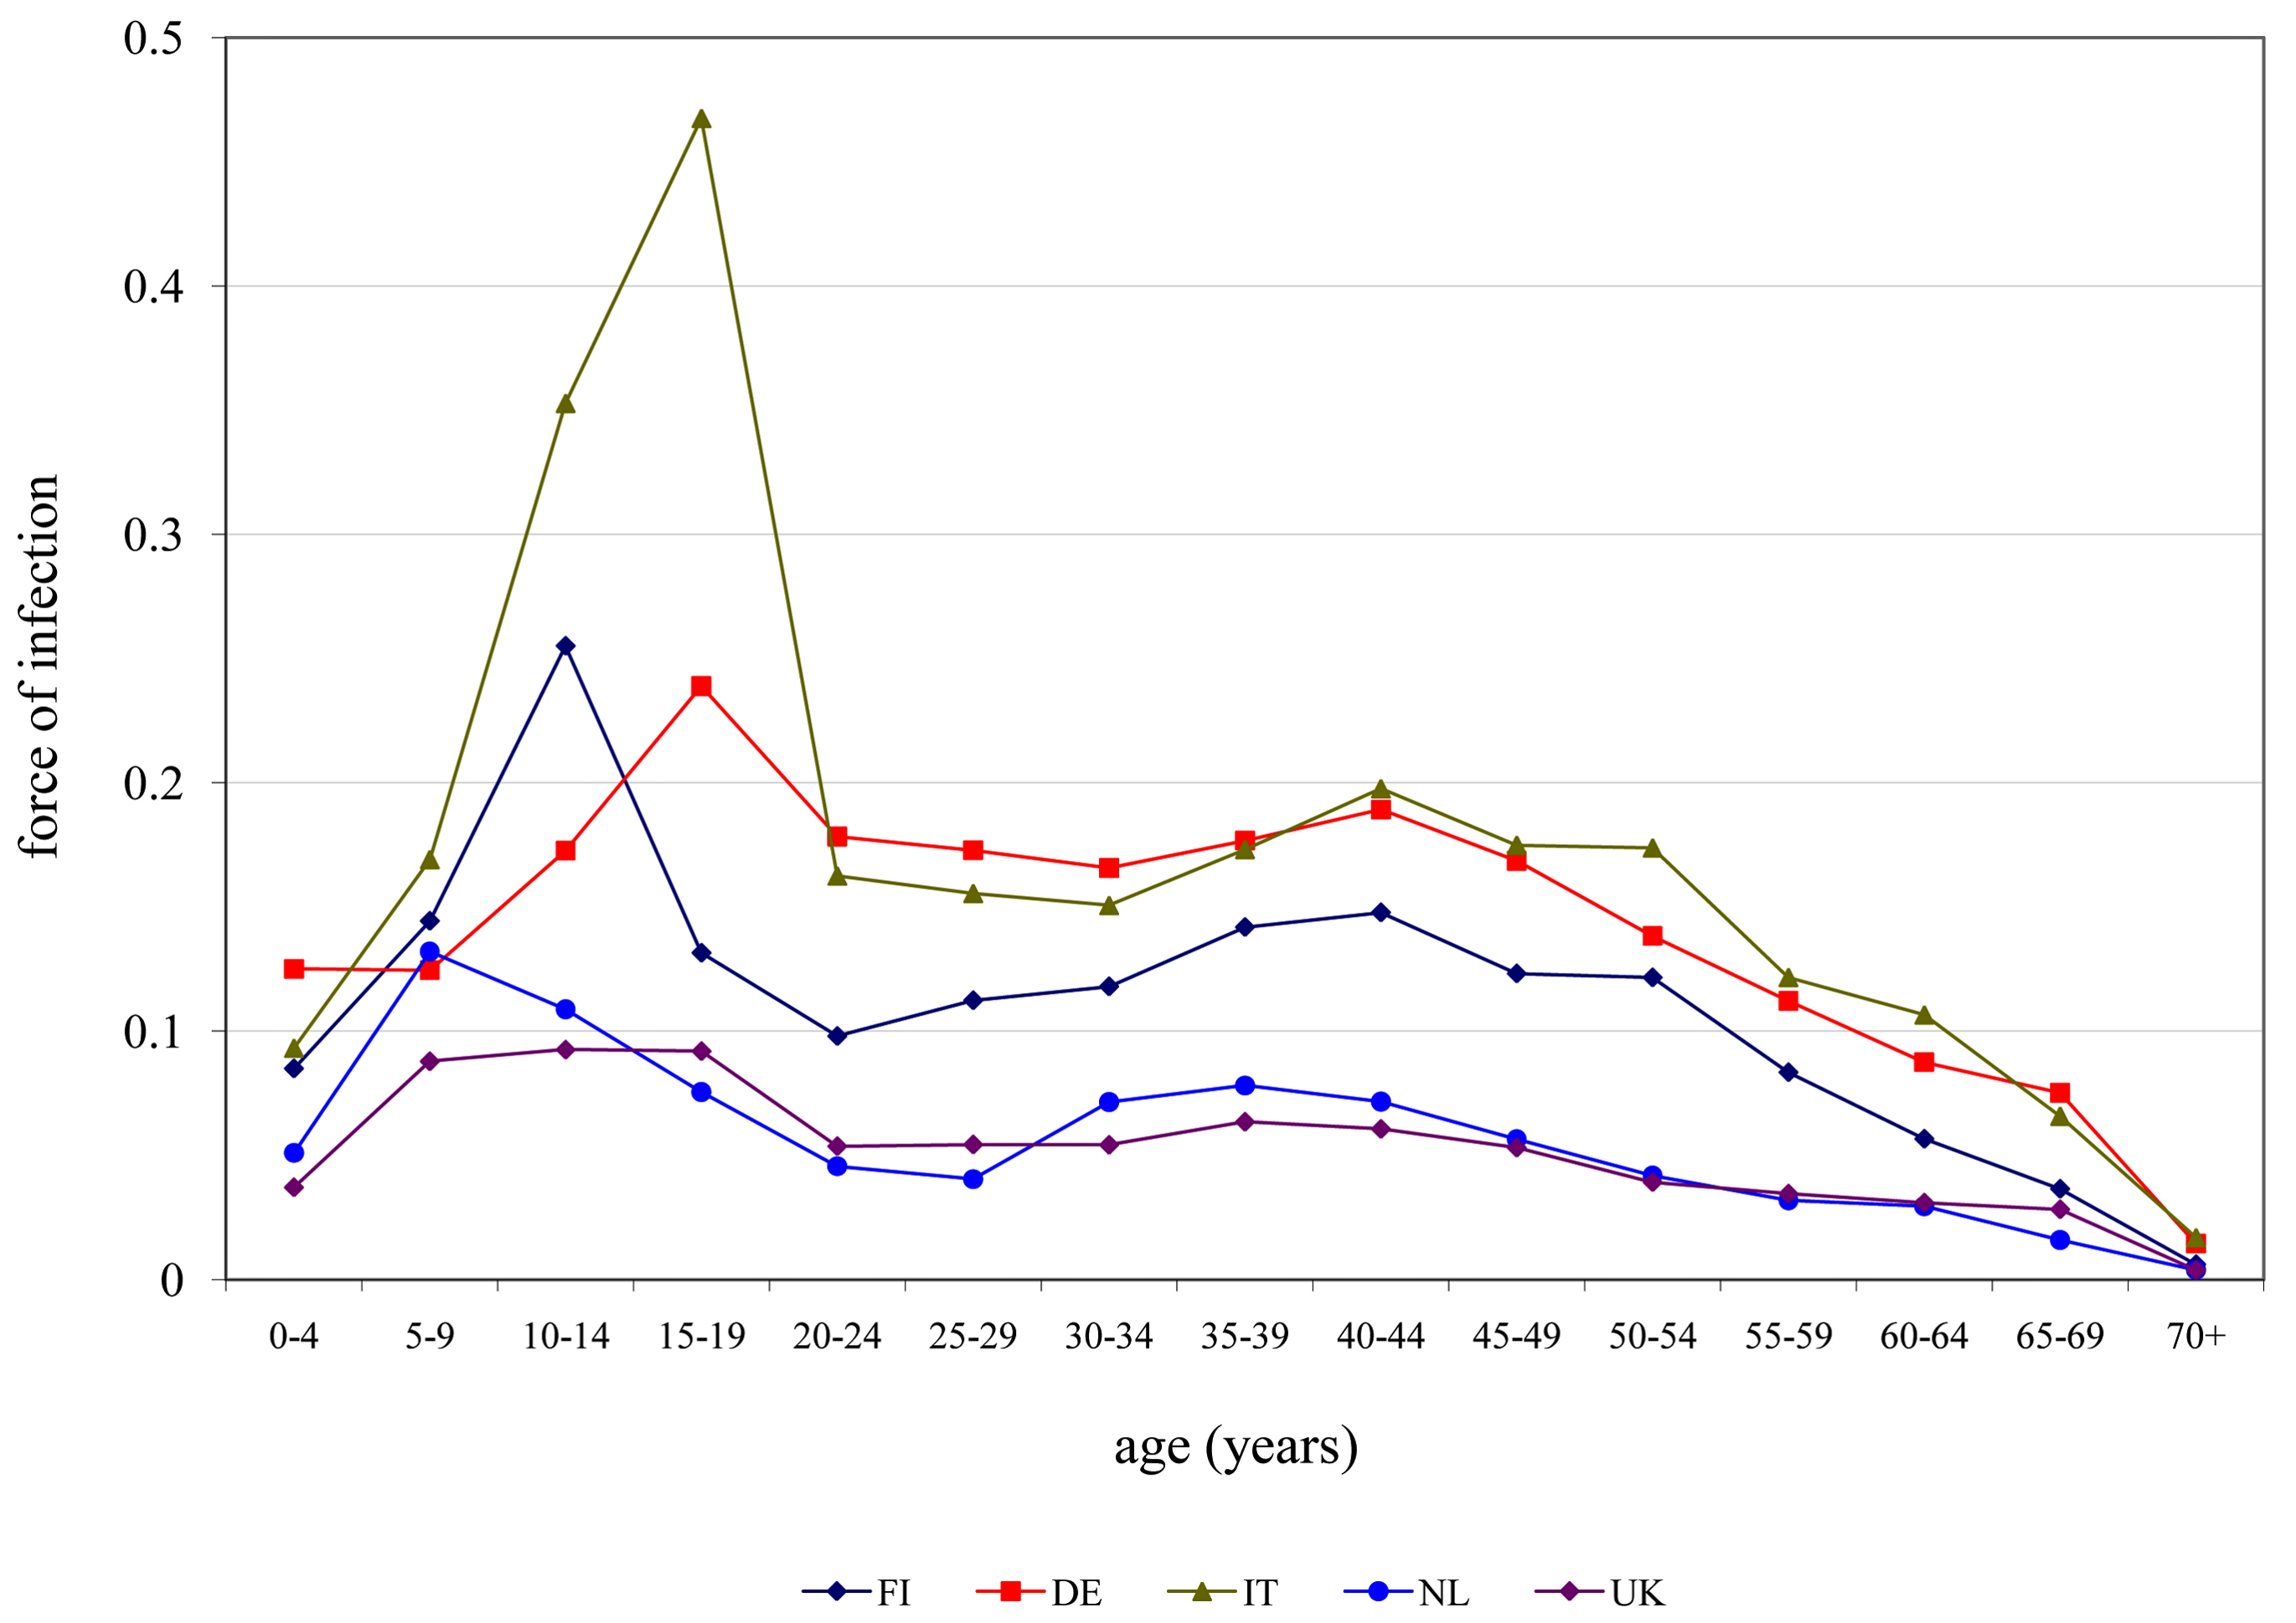 Estimates for the age-dependent force of infection (risk per year of becoming infected) for five European countries.